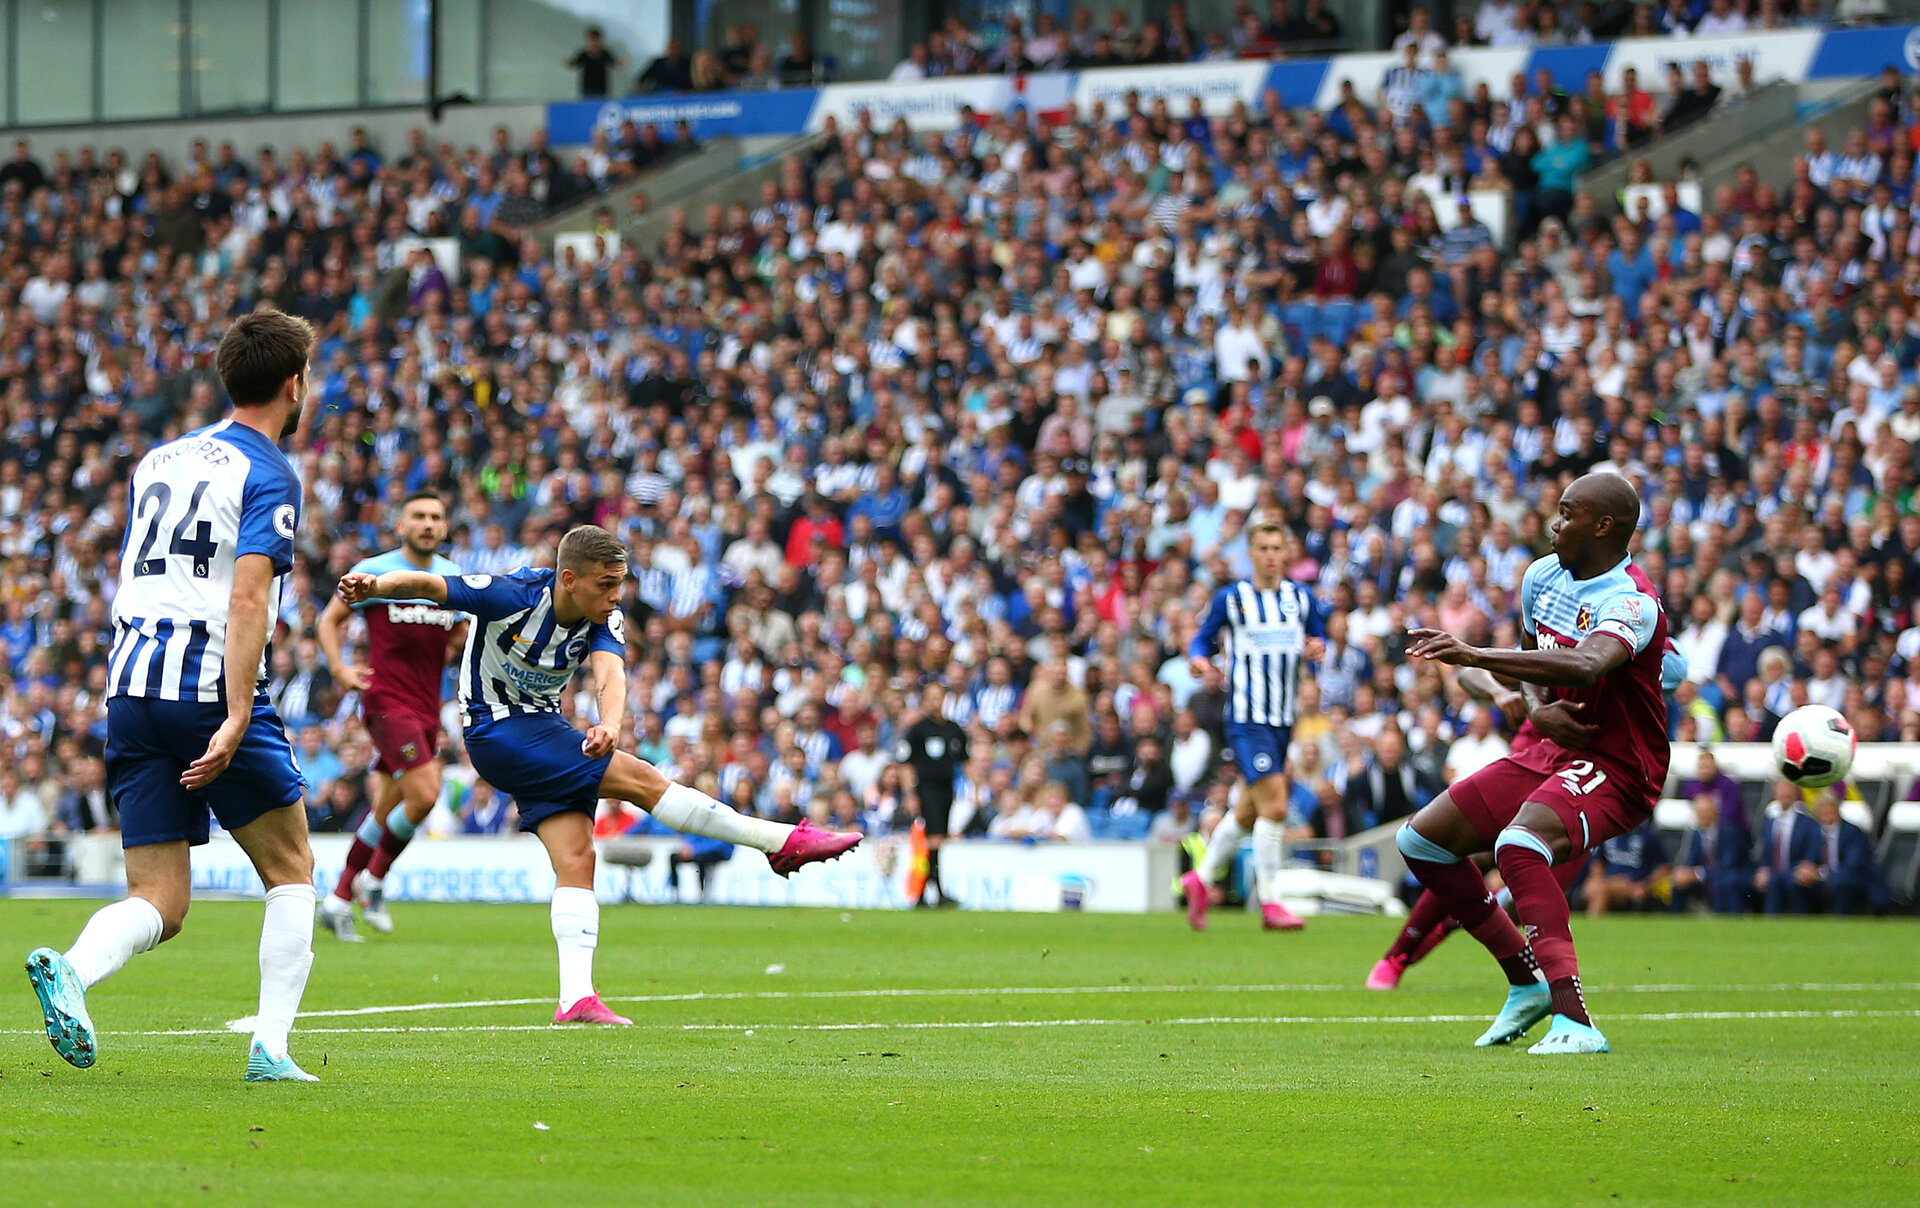 BRIGHTON, ENGLAND - AUGUST 17: Leondro Trossard of Brighton and Hove Albion scores his team's first goal during the Premier League match between Brighton & Hove Albion and West Ham United at American Express Community Stadium on August 17, 2019 in Brighton, United Kingdom. (Photo by Steve Bardens/Getty Images)